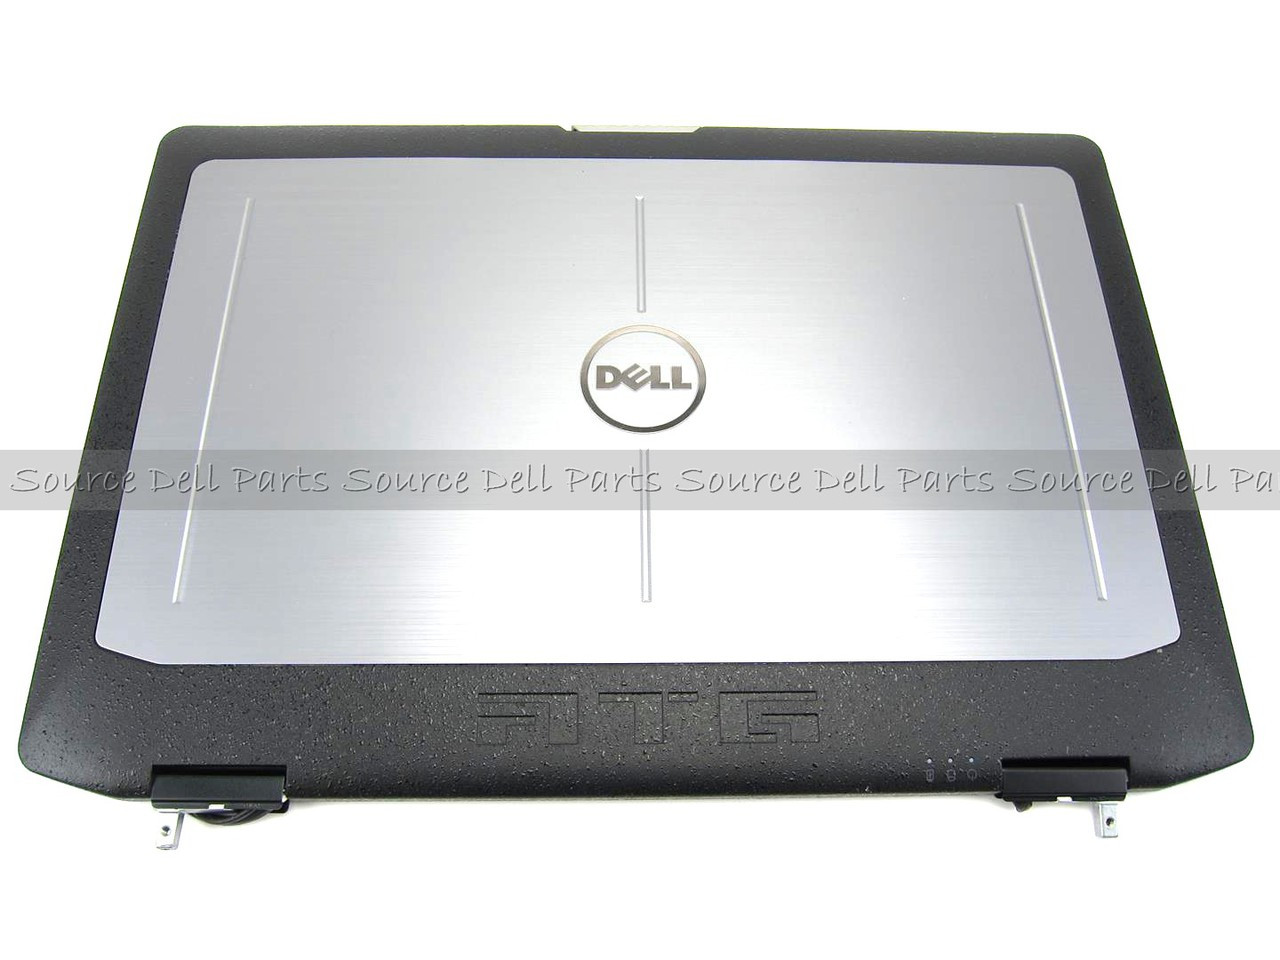 Dell Latitude E6430 ATG Lcd Back Cover with Hinges For Touch Screen  - 6W61R